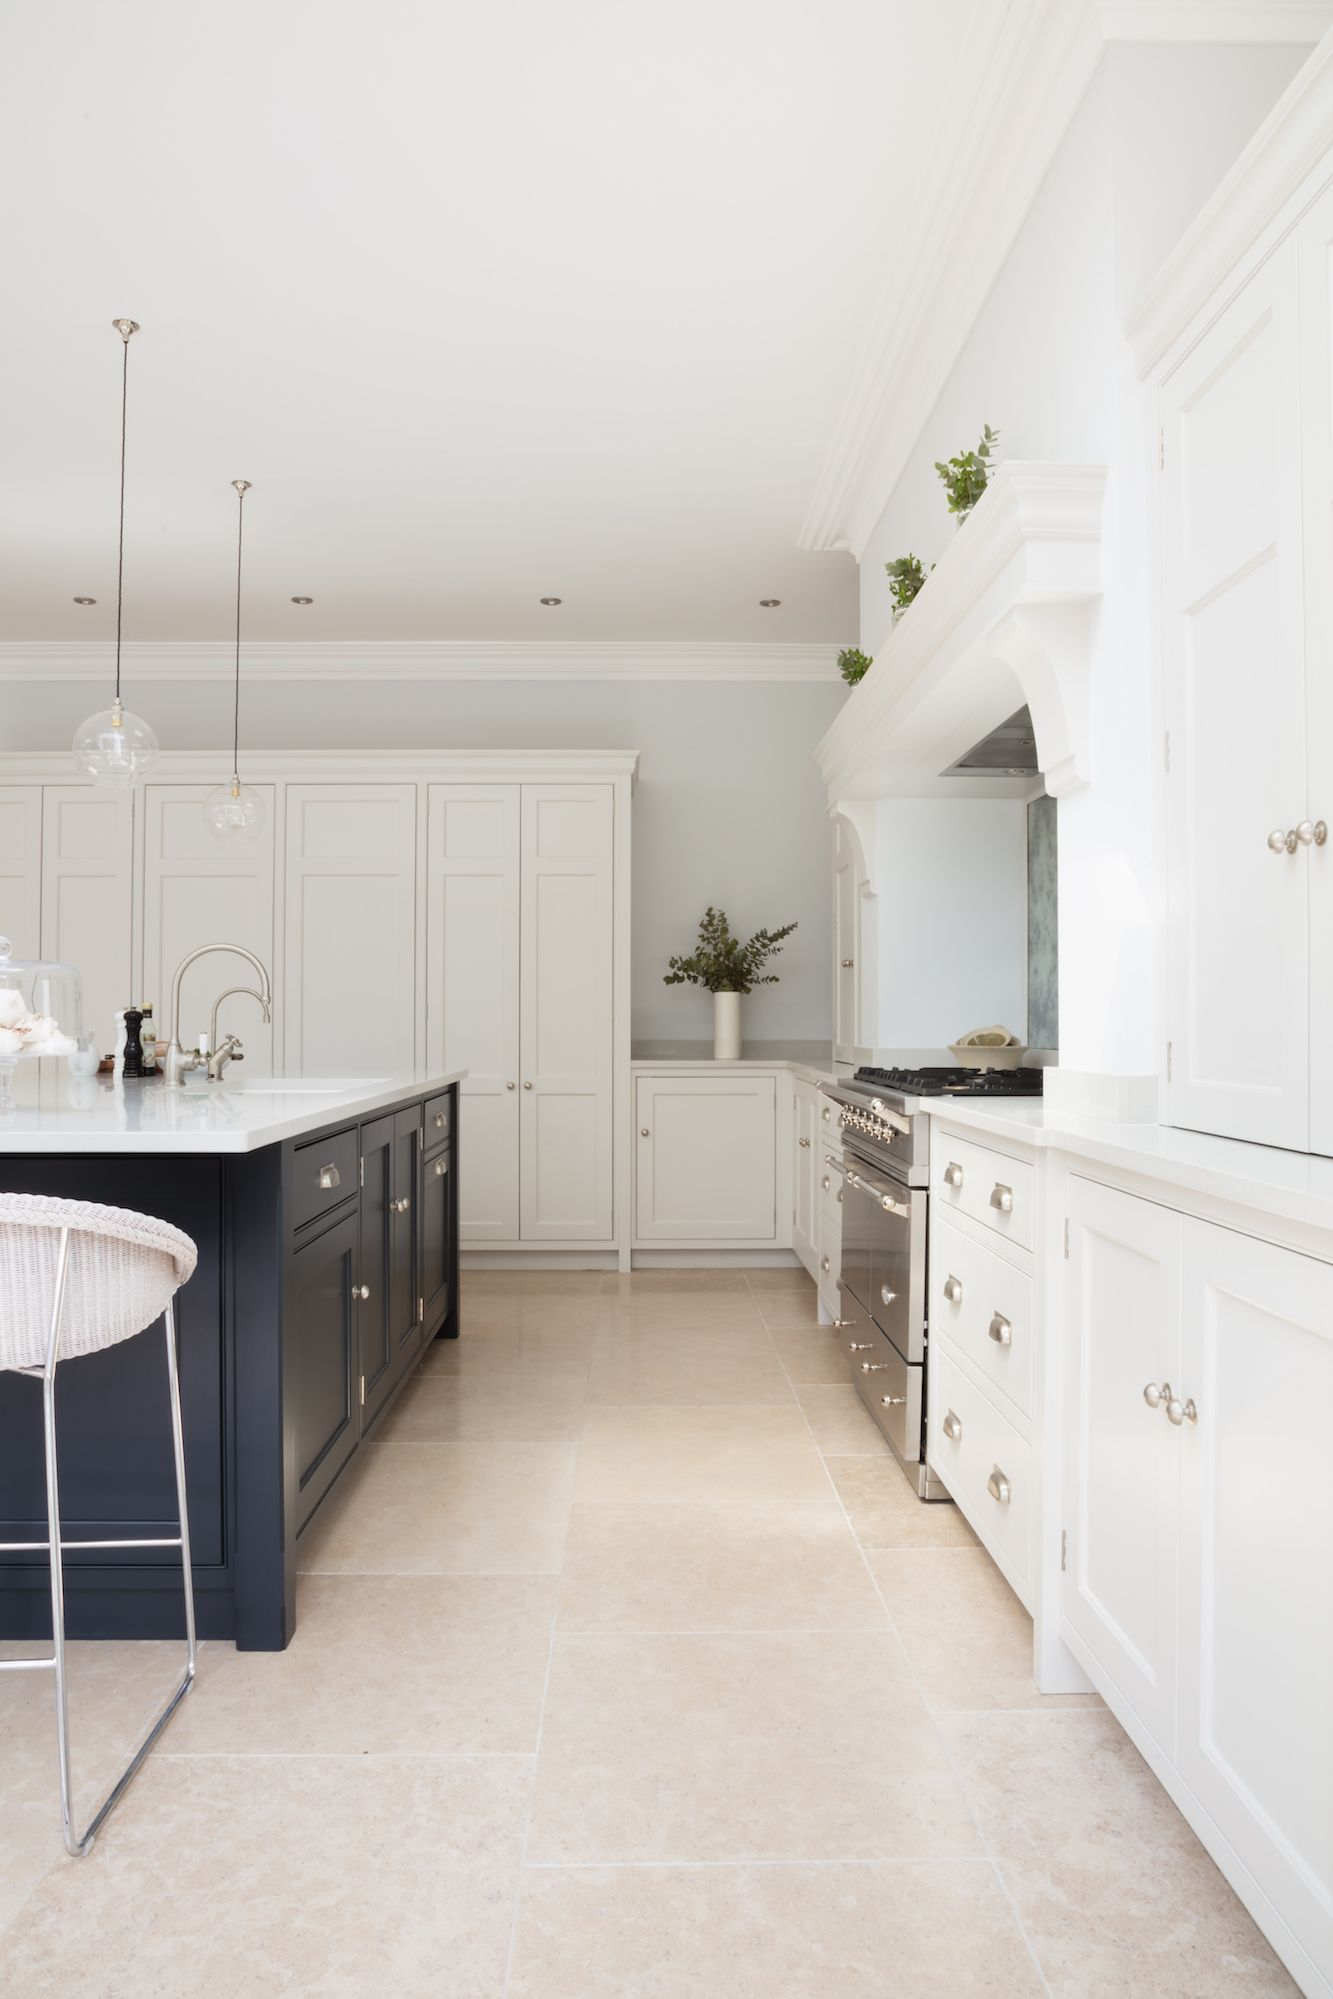 60 Kitchen Island Ideas, Leaven Up Your Cookery | Luxury ...